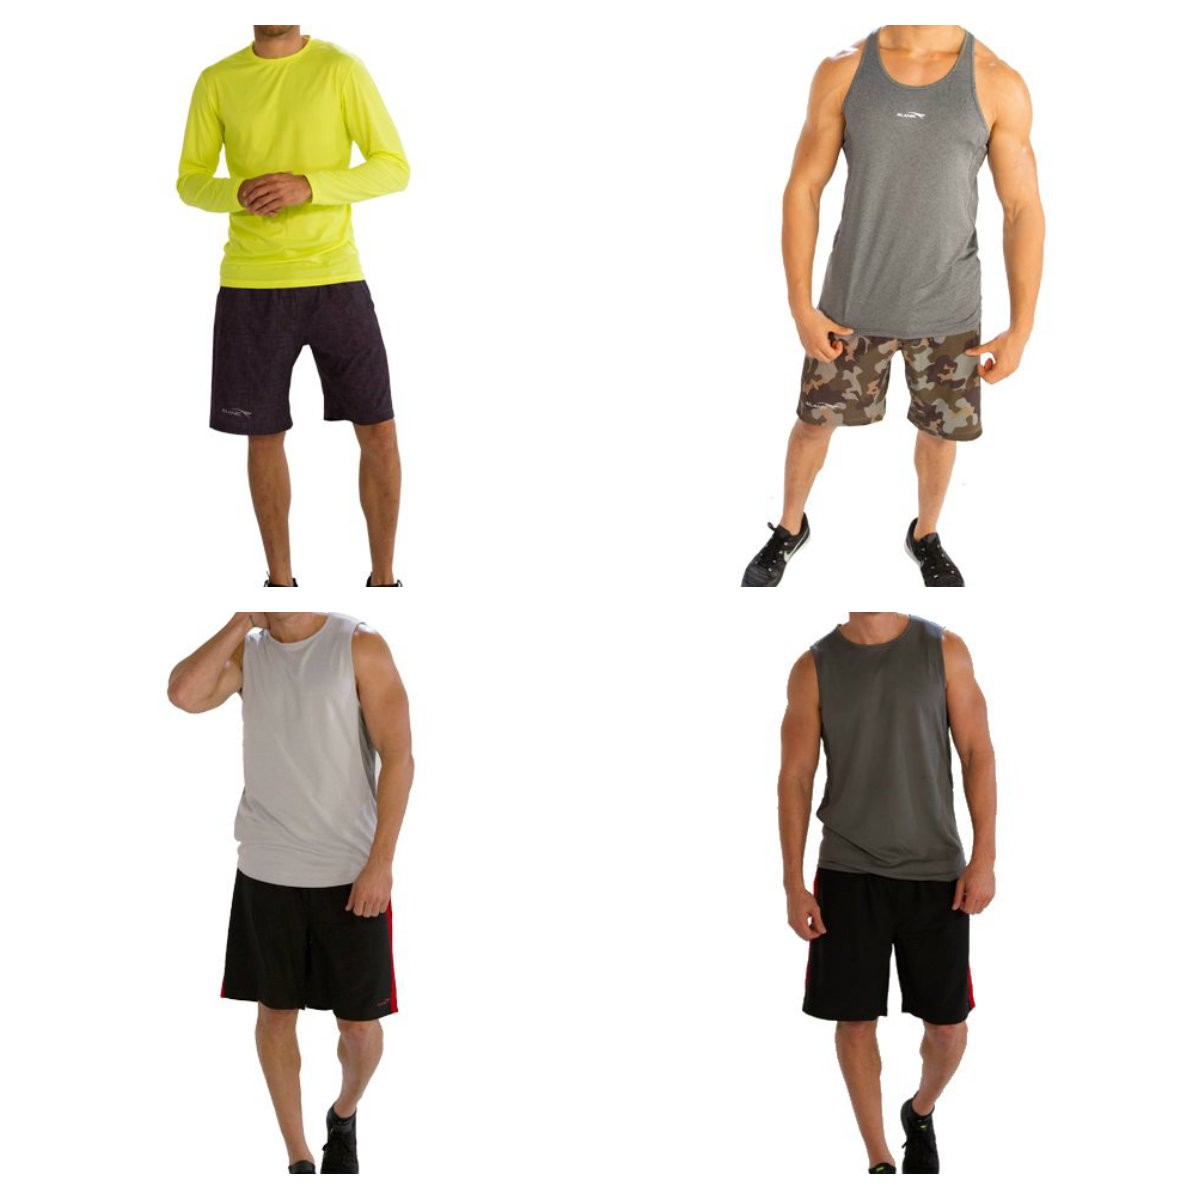 Cheap workout clothes online